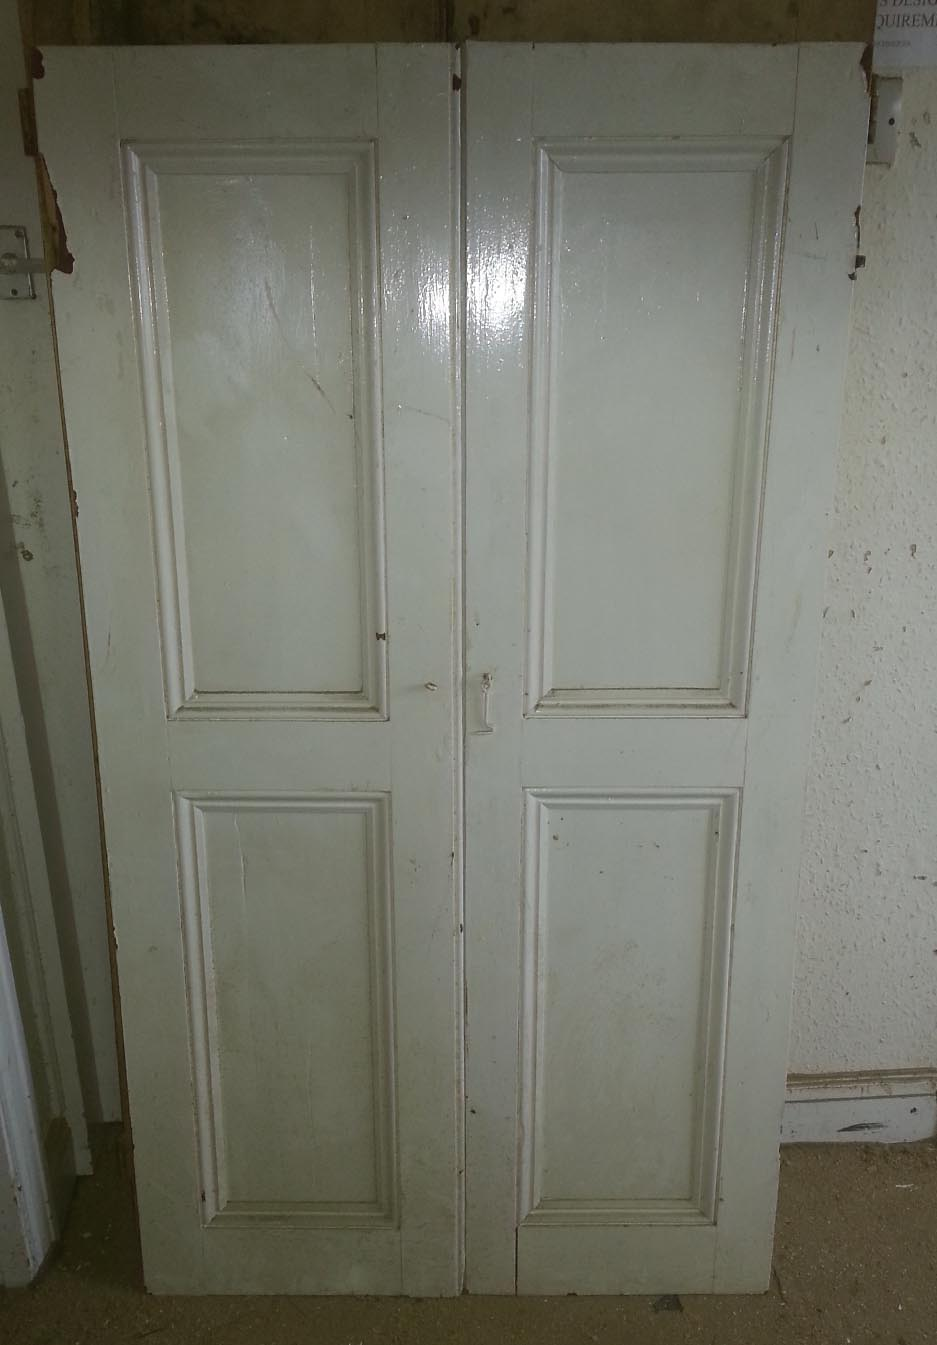 regency antiques item - Antique Cupboard Doors Currently Available In The Regency Antiques